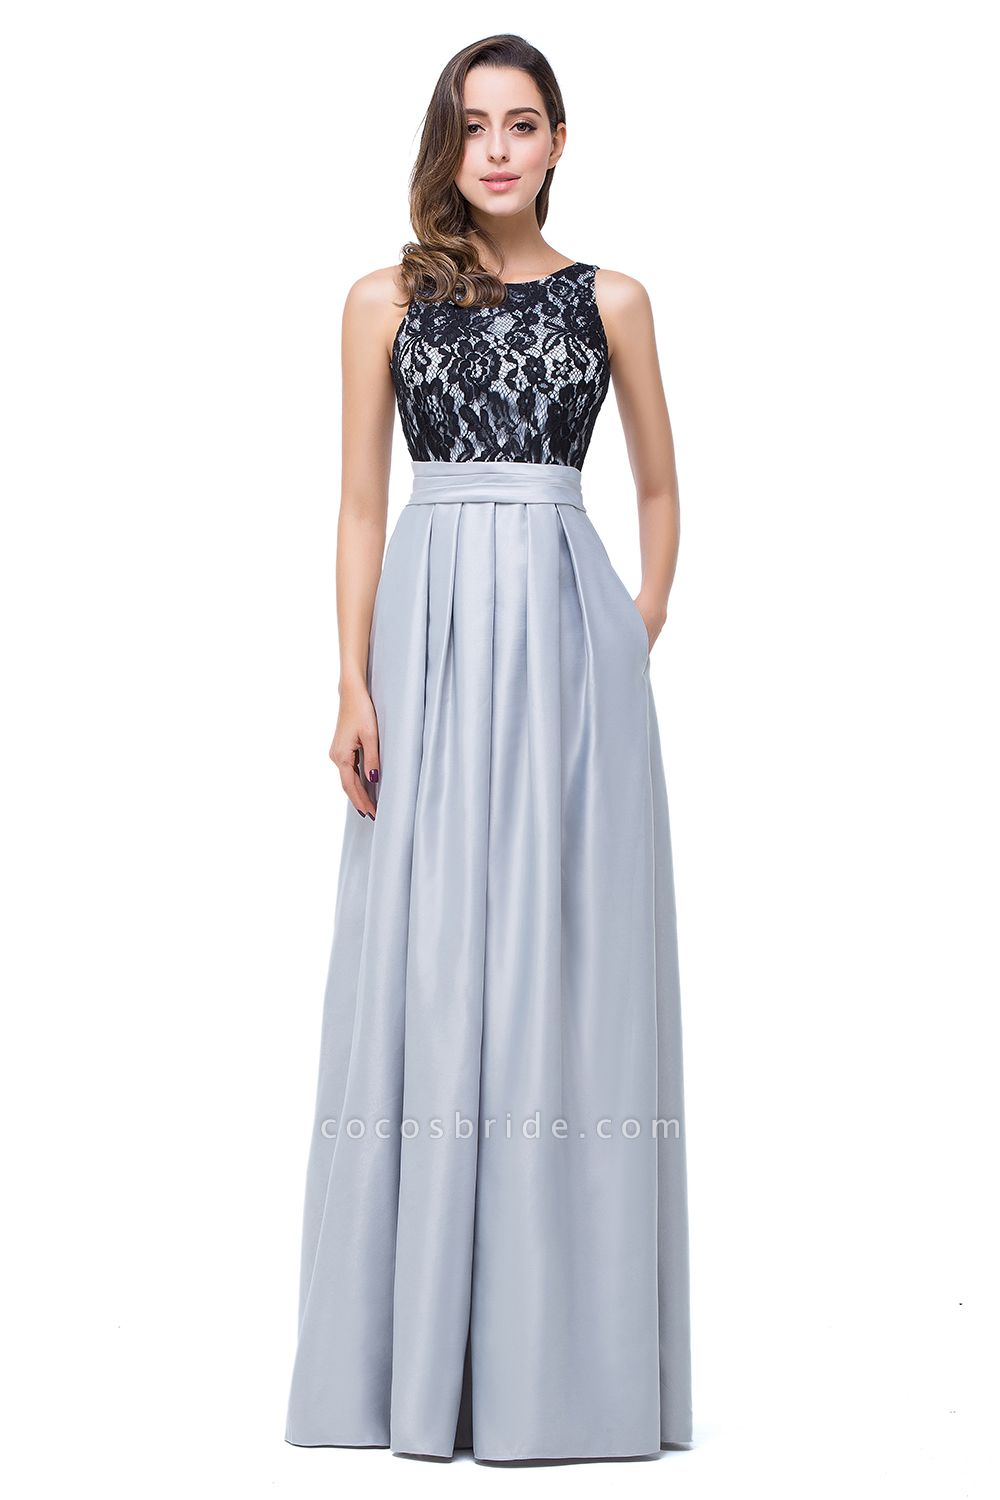 ELLIE | A-line Floor-length Crew Chiffon Lace Bridesmaid Dresses